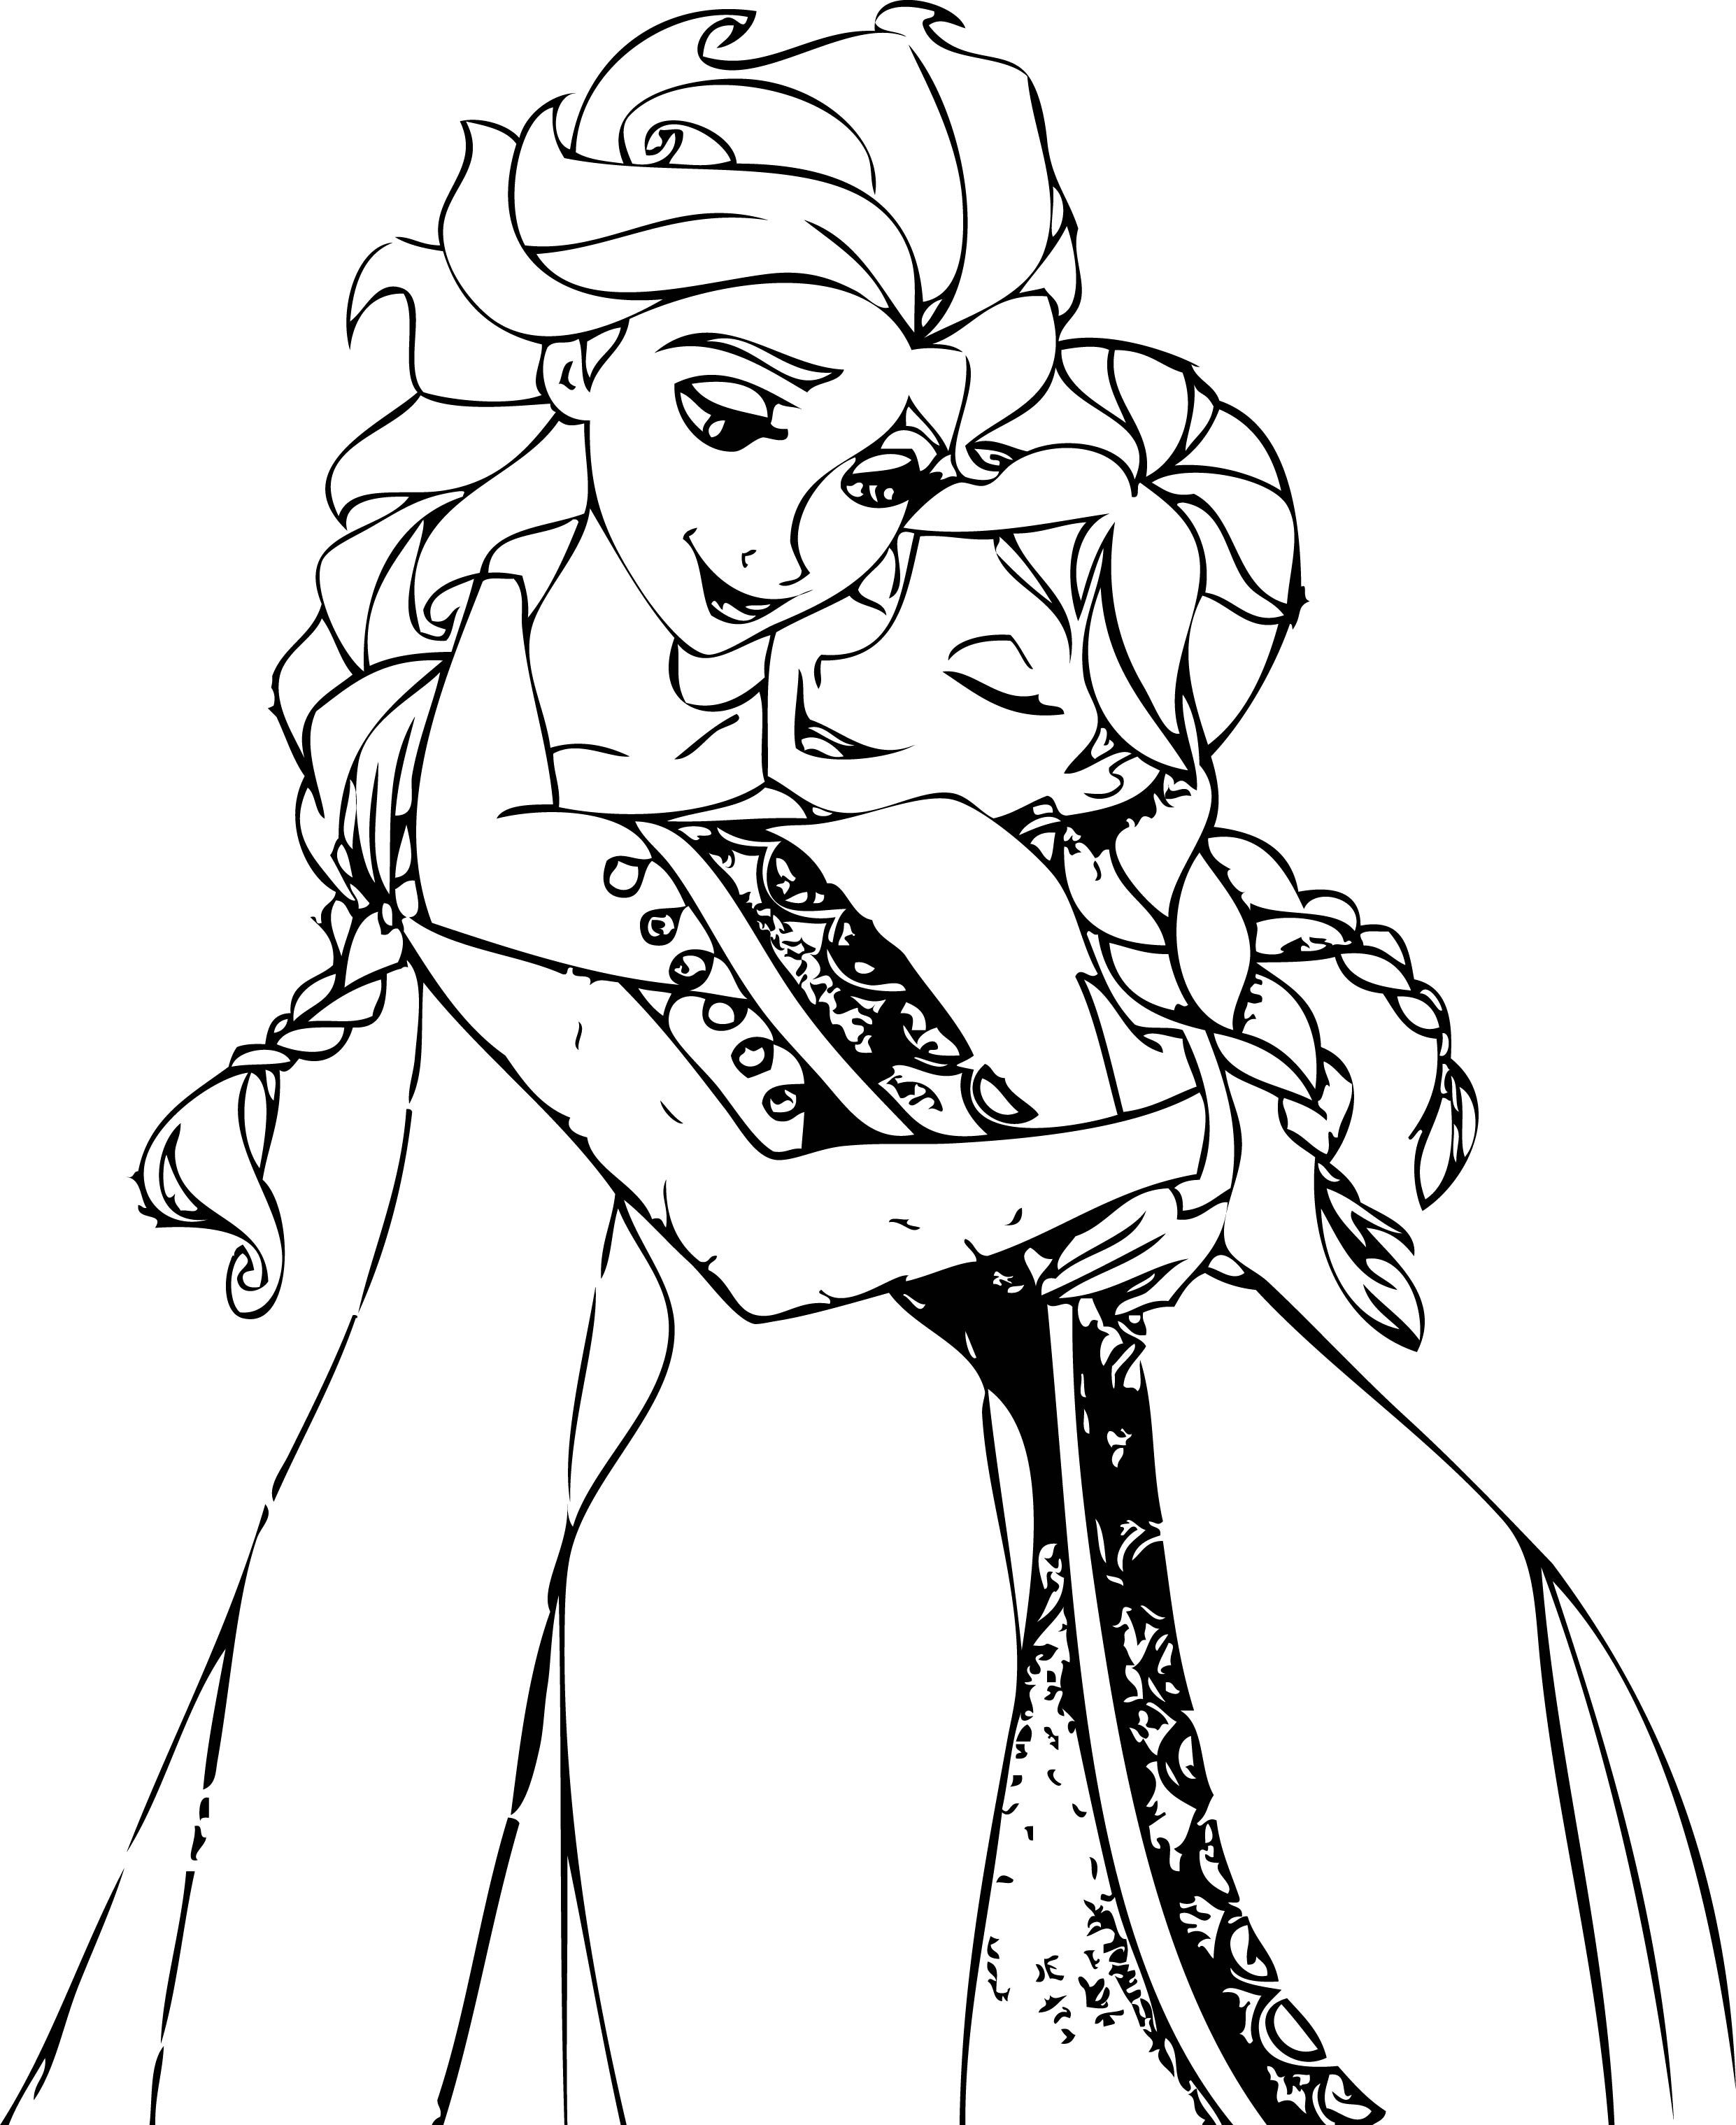 Elsa And Anna Hug Coloring Page | wecoloringpage | Pinterest